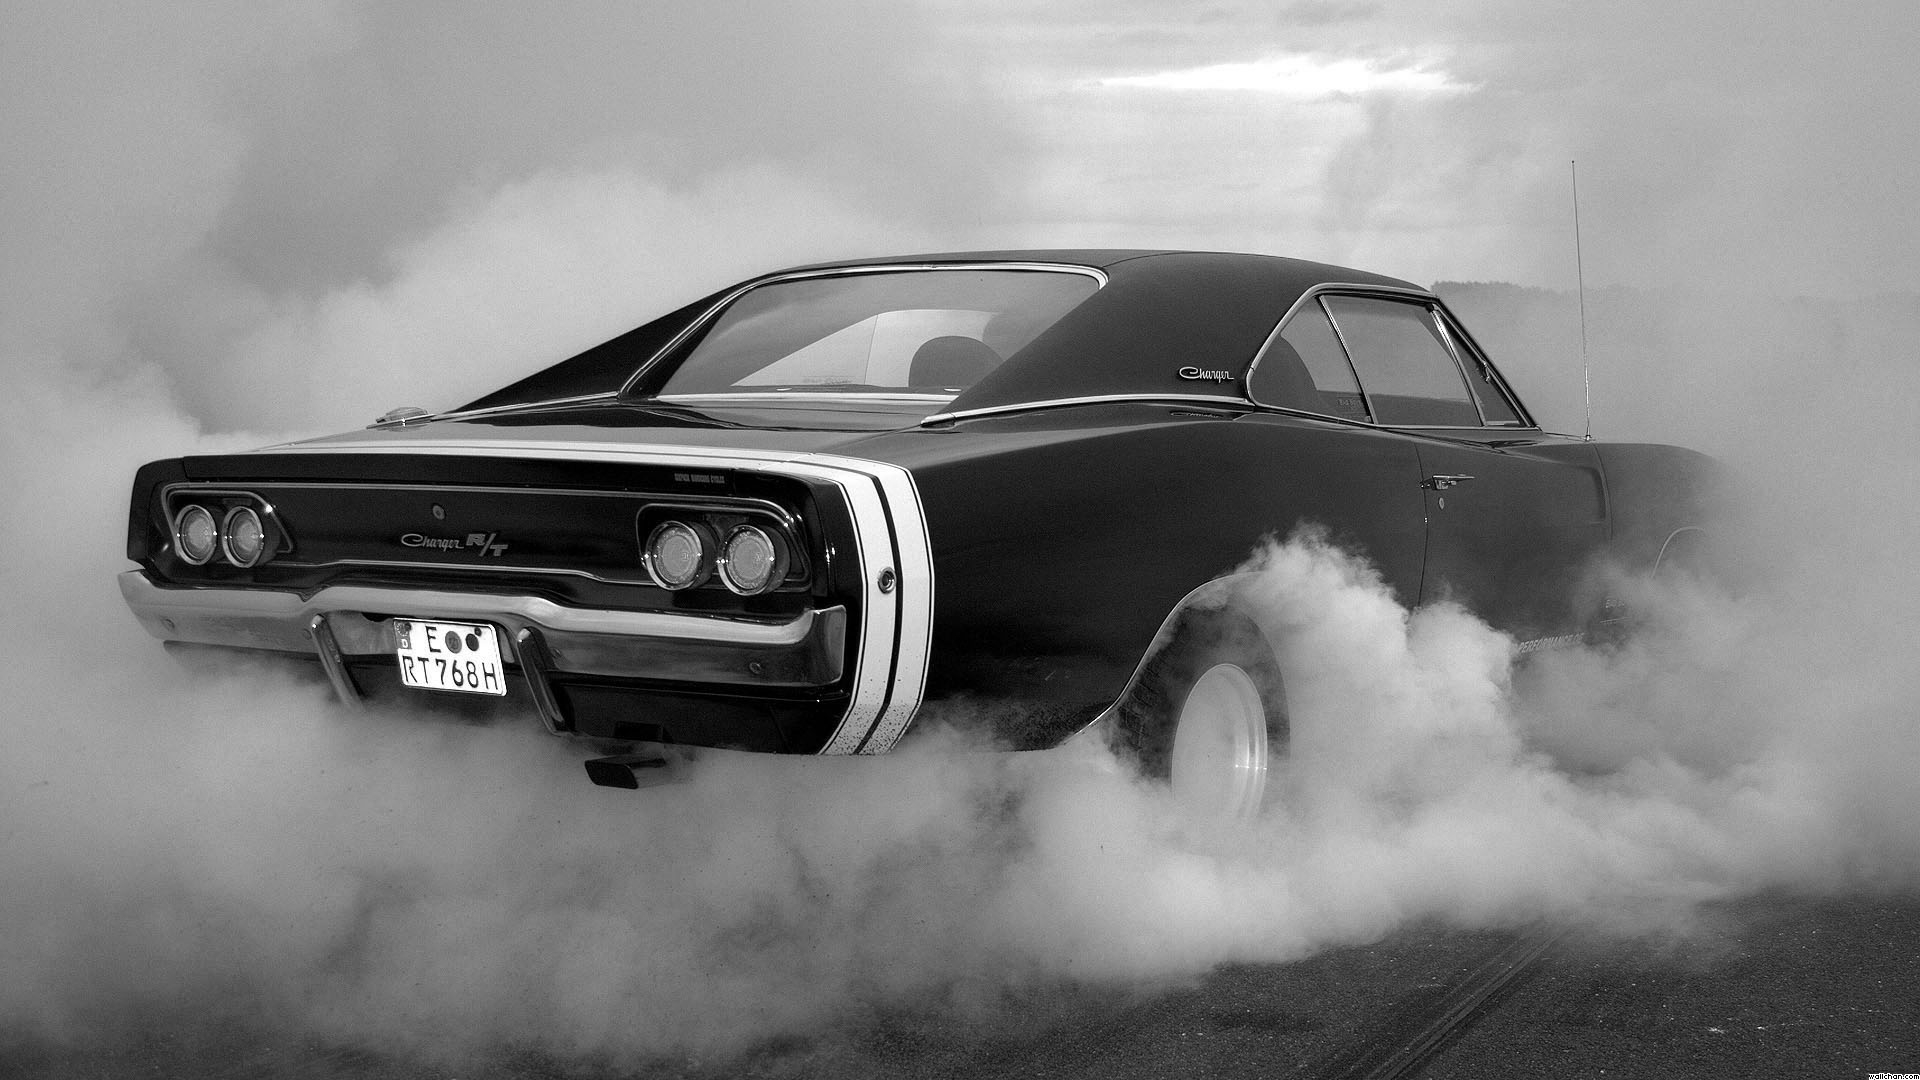 Dodge Charger Smoke Wallpapers